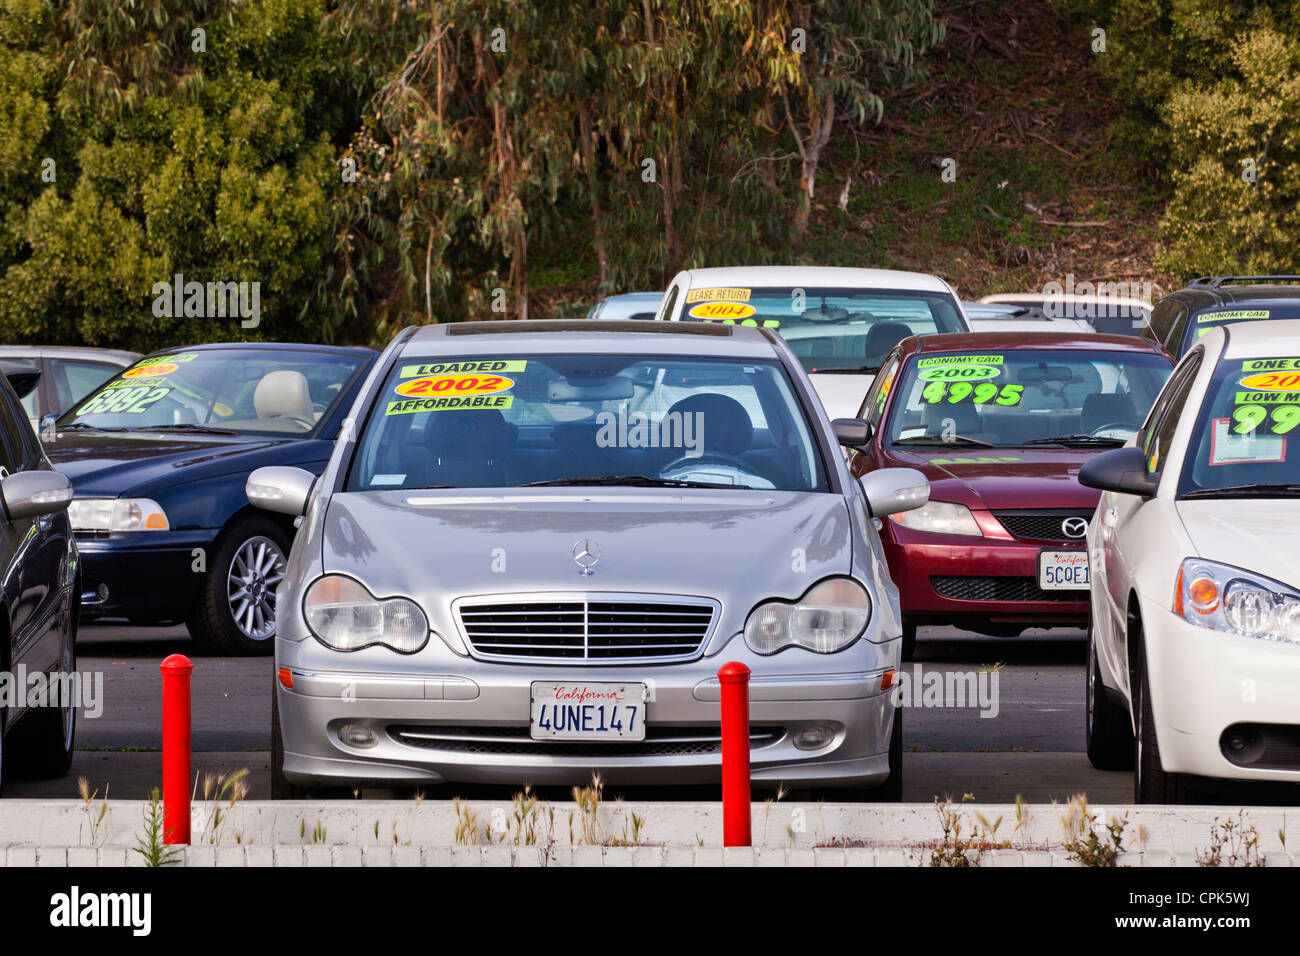 Attractive American Used Cars For Sale Image - Classic Cars Ideas ...